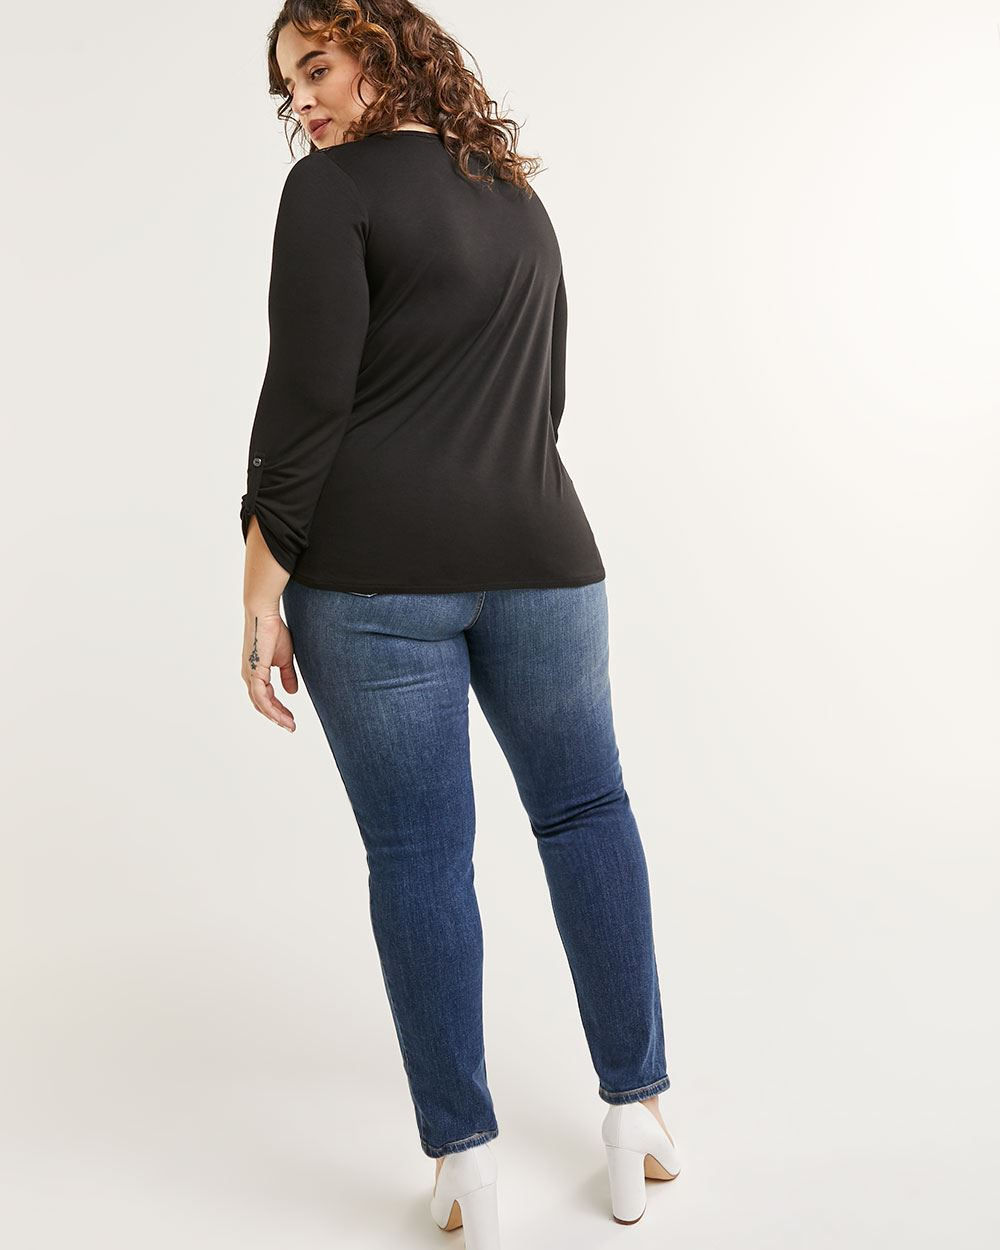 Long Sleeve Henley Neck Tee with Crochet Inserts